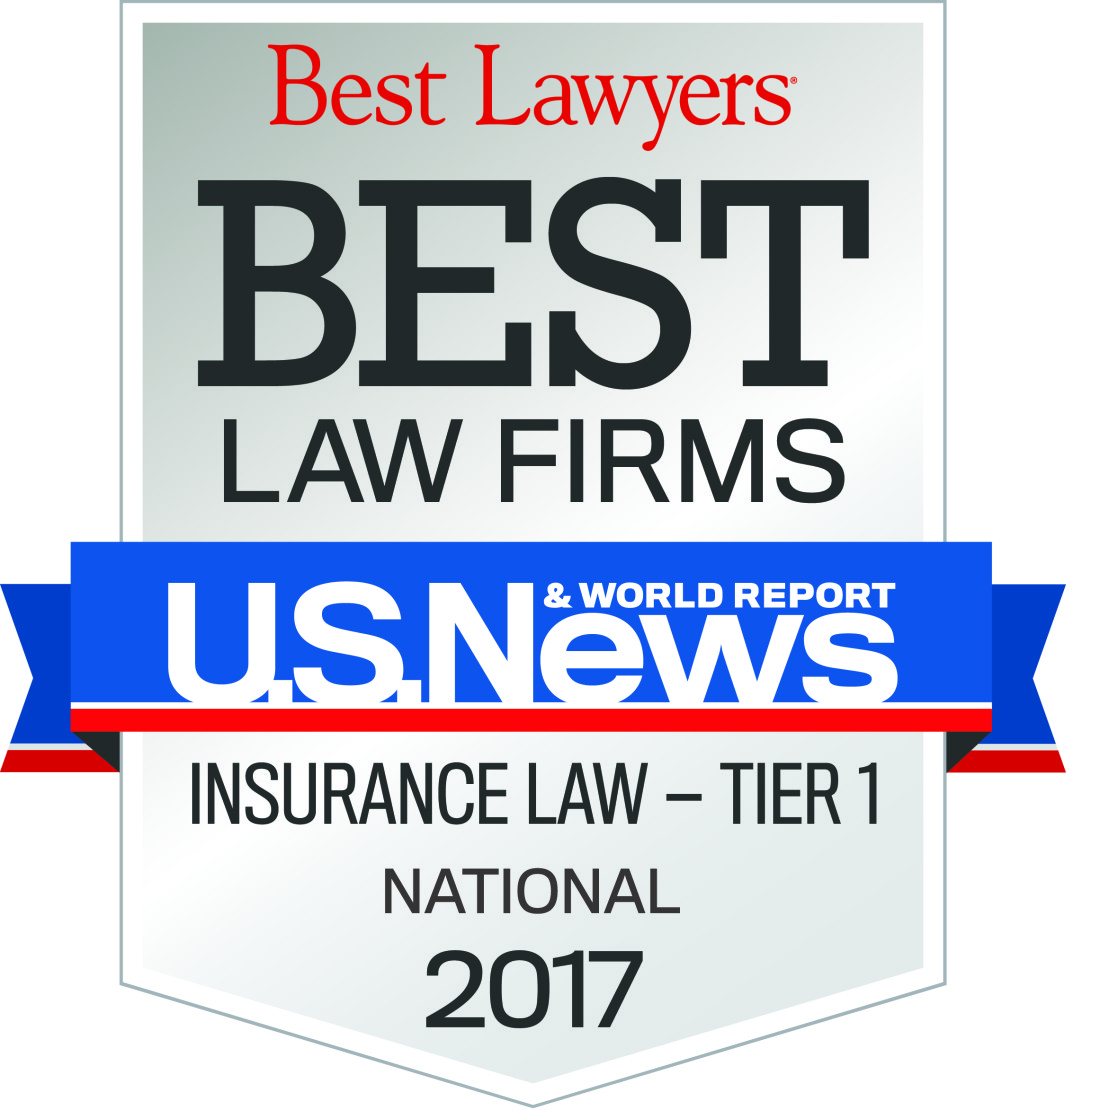 Best Lawyers US World News and Report